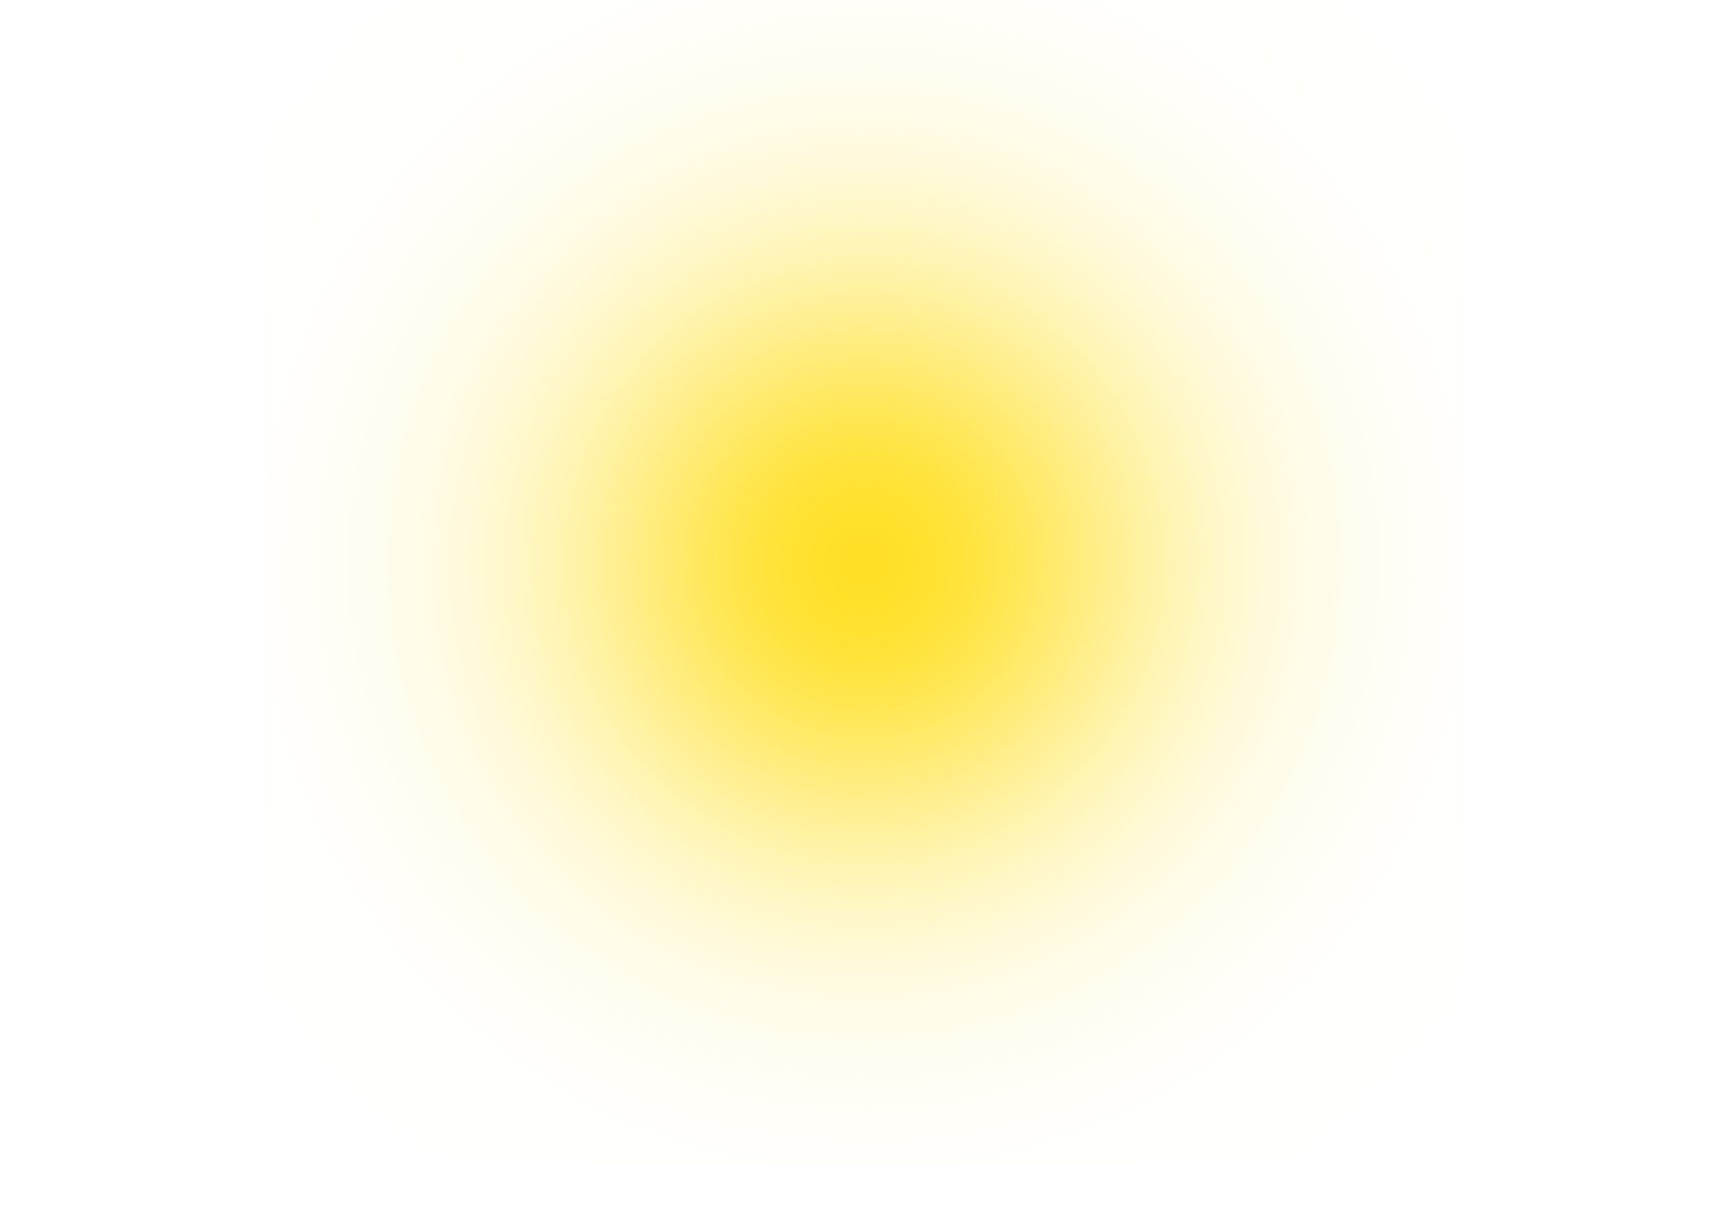 yello_circle_wide | Mark Ohe for Bright Light Effect Png  587fsj